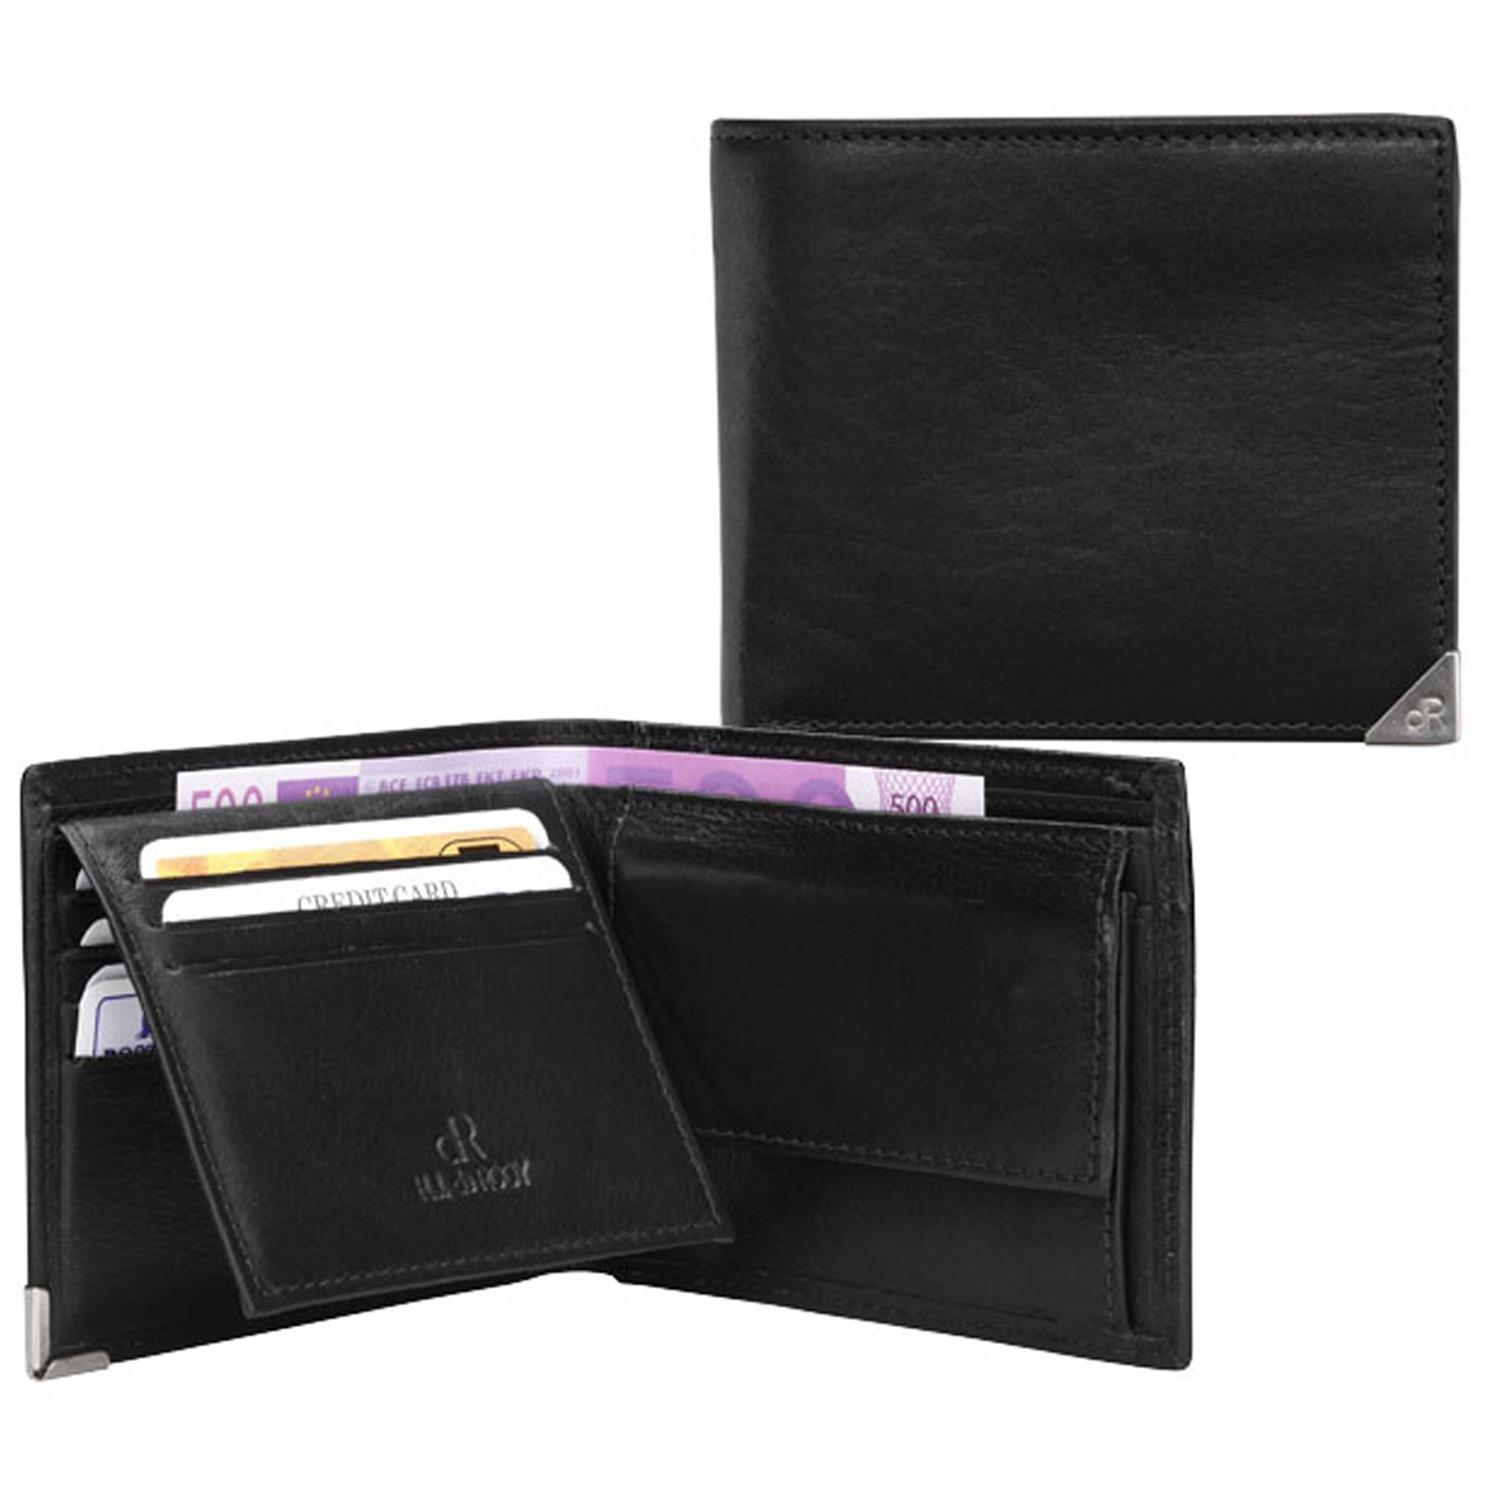 H.J. de Rooy Lederwaren 15524 Billfold Black